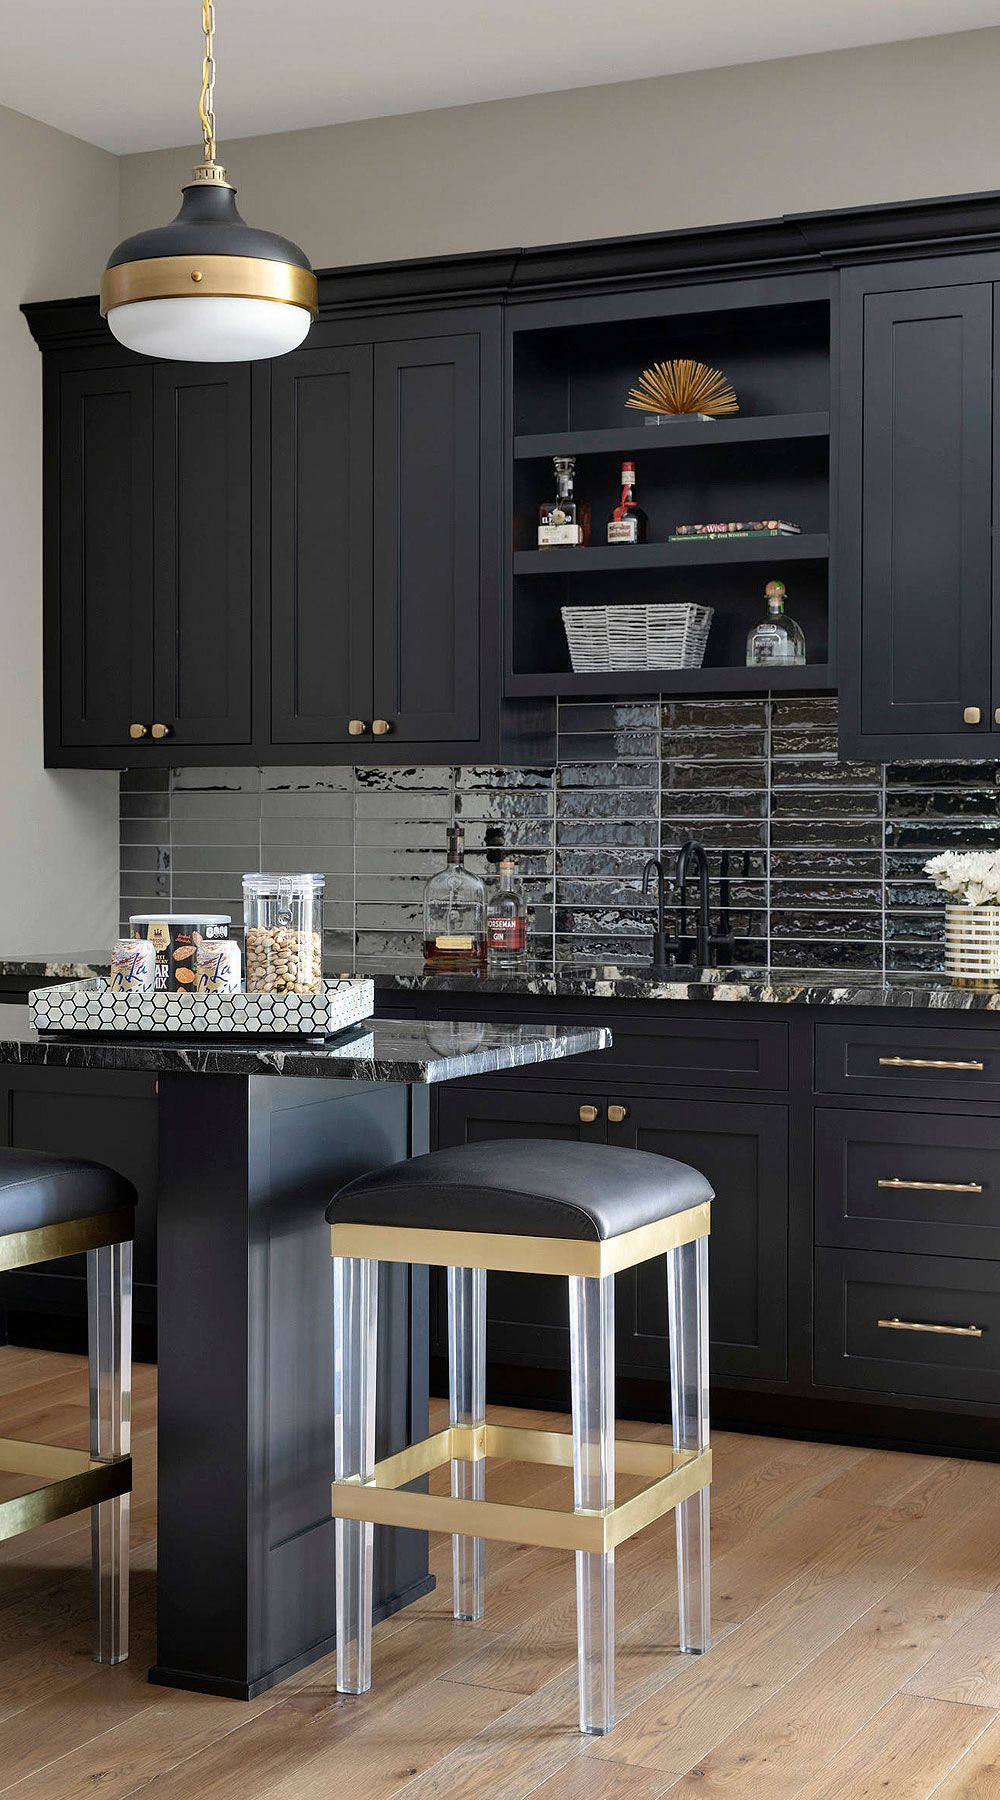 31 Black Subway Backsplash Ideas The Power Of Black Color Black Kitchen Cabinets Black Kitchens Black Countertops